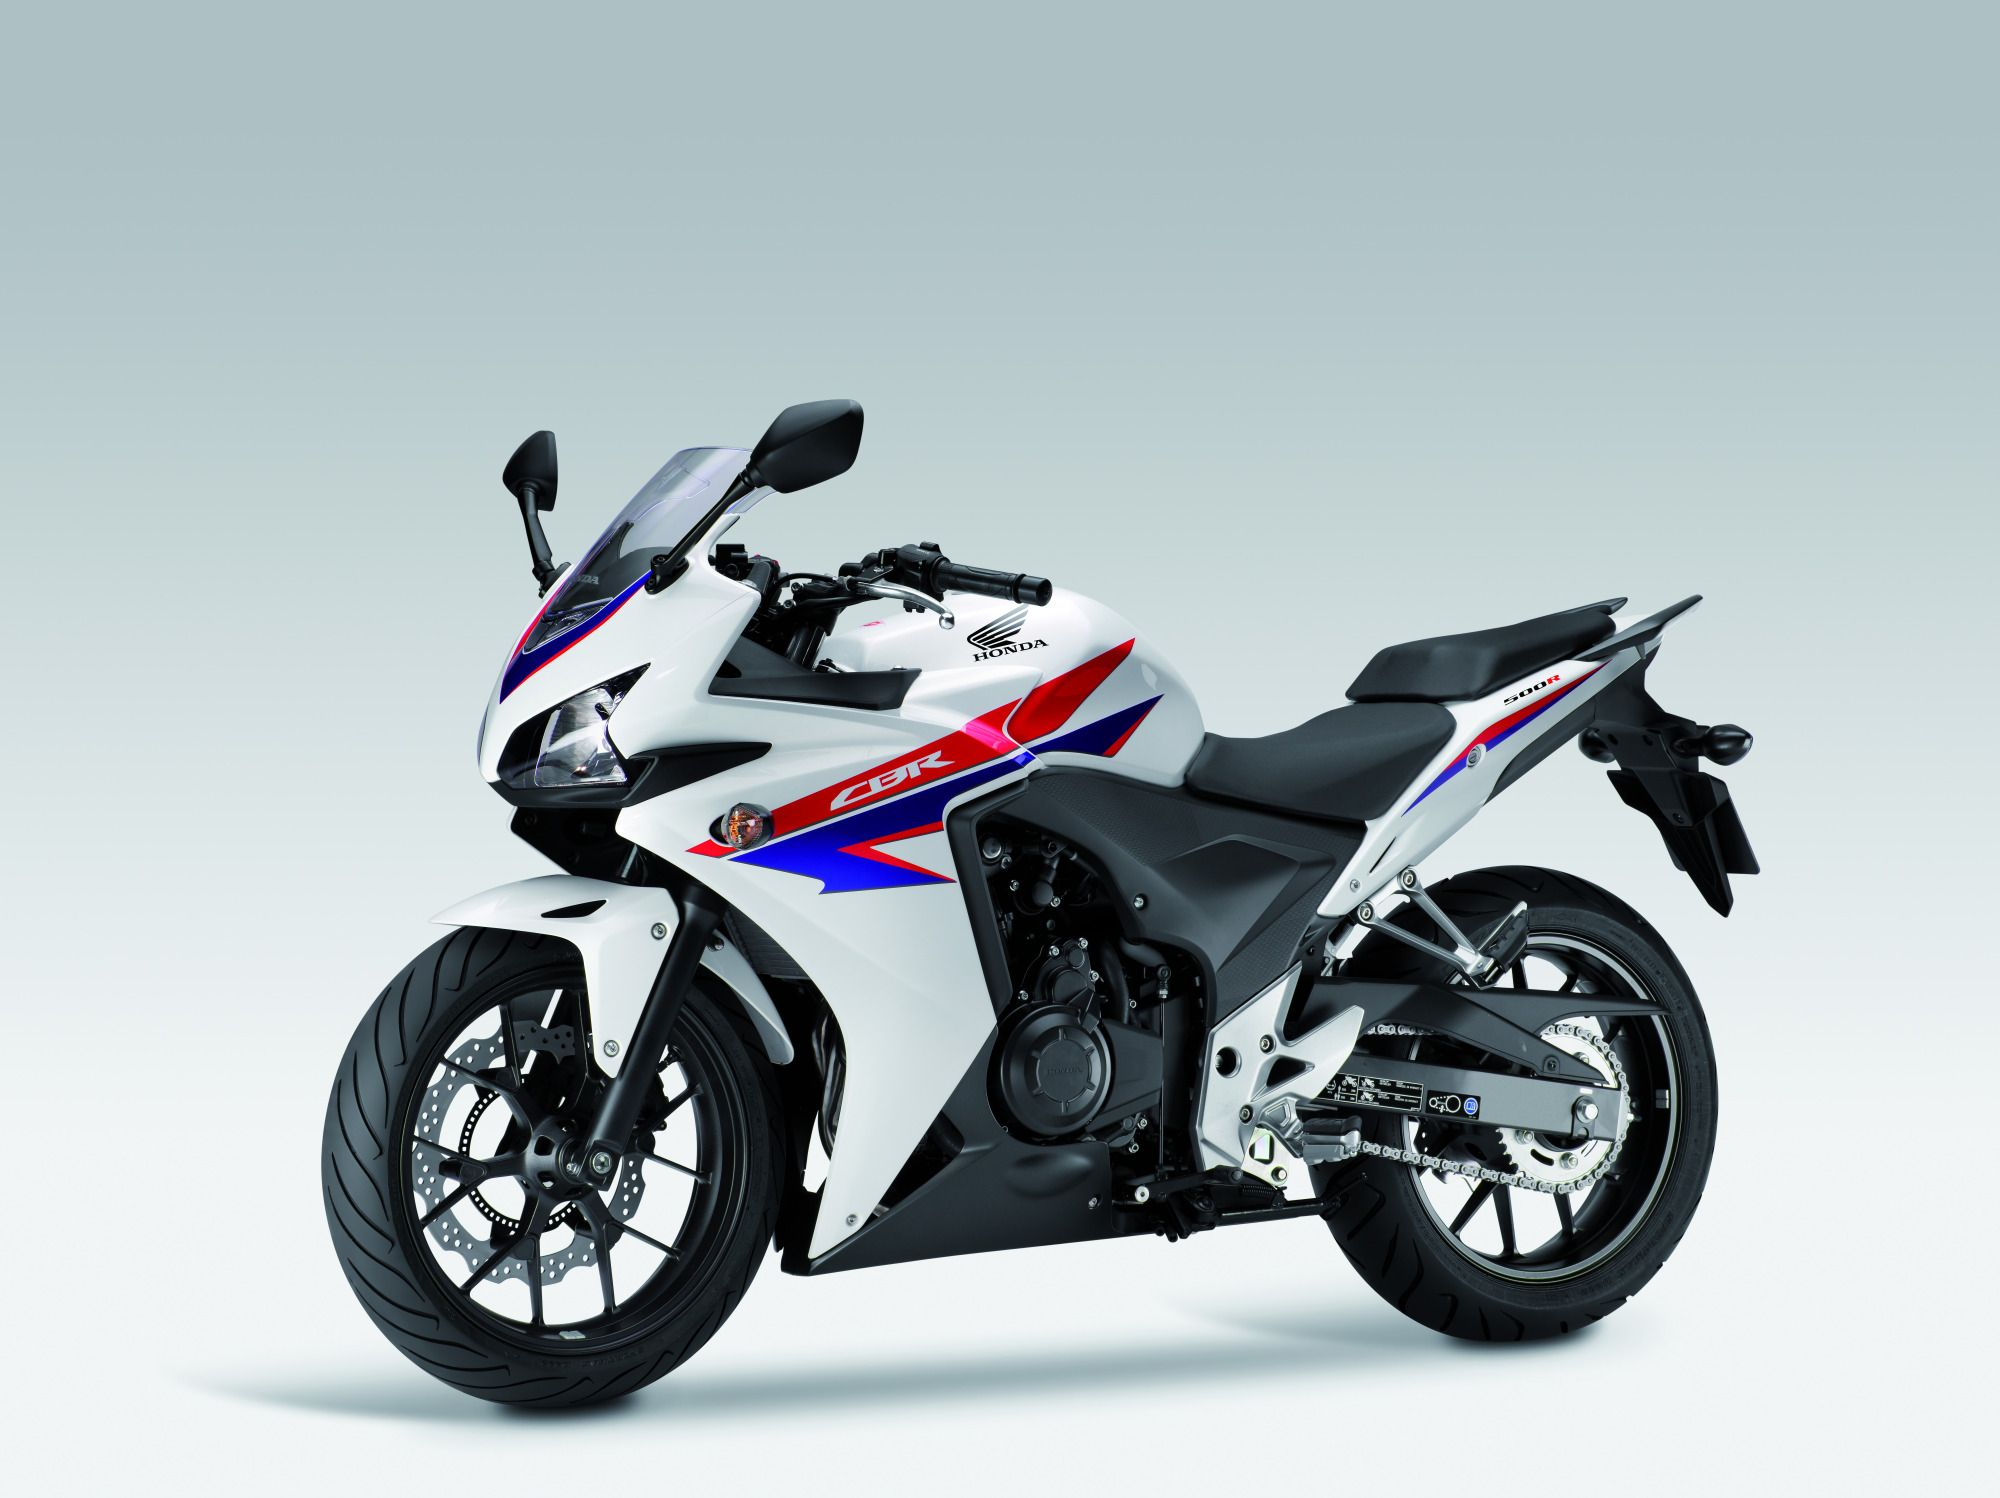 Honda cbr 2014 sports super sports bike photo - Find This Pin And More On Honda By Adanaizmir123